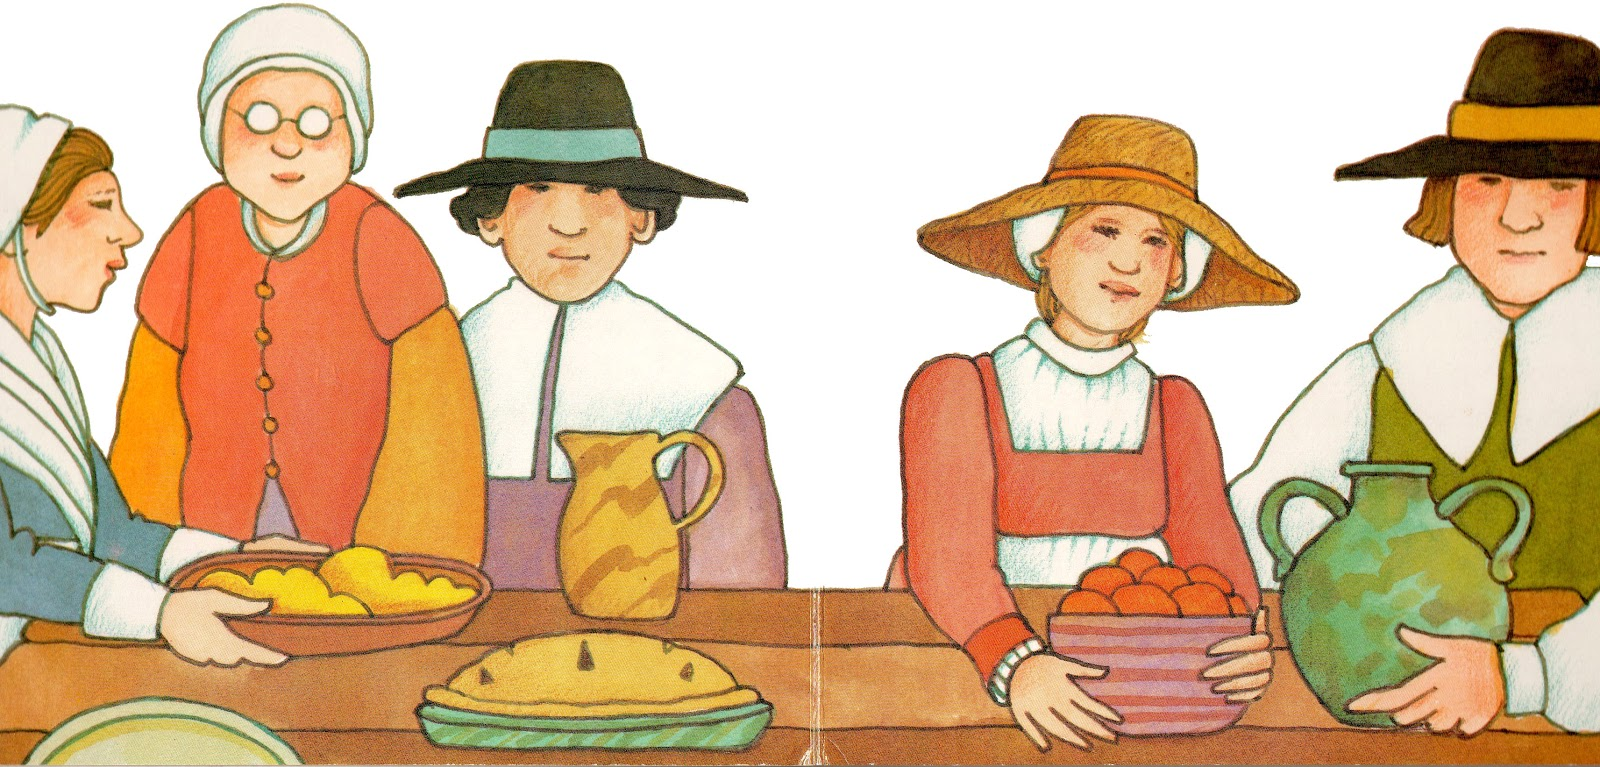 Googoogallery my first thanksgiving by tomie depaola for What did they eat at the first thanksgiving